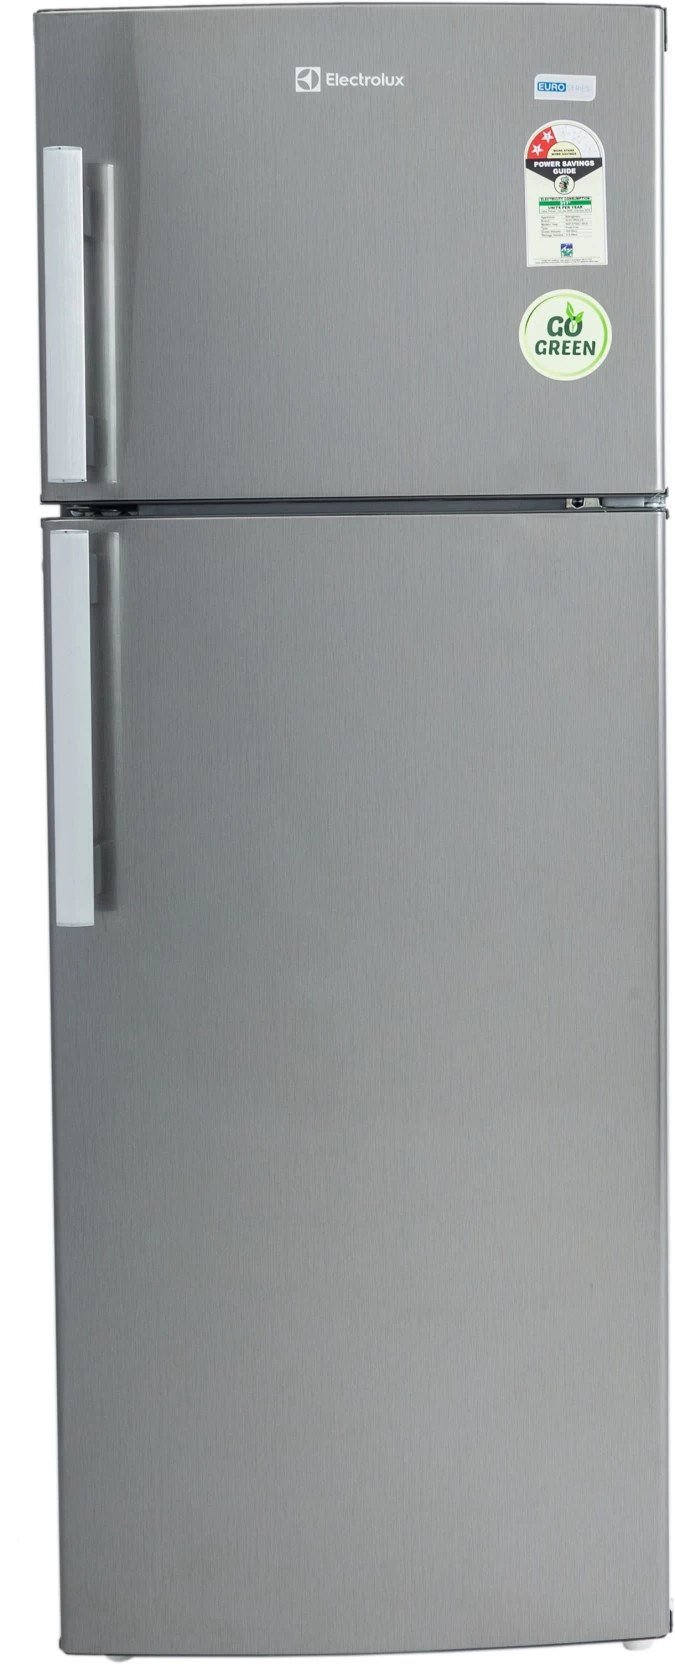 hight resolution of  frost free double door 2 star refrigerator add to cart